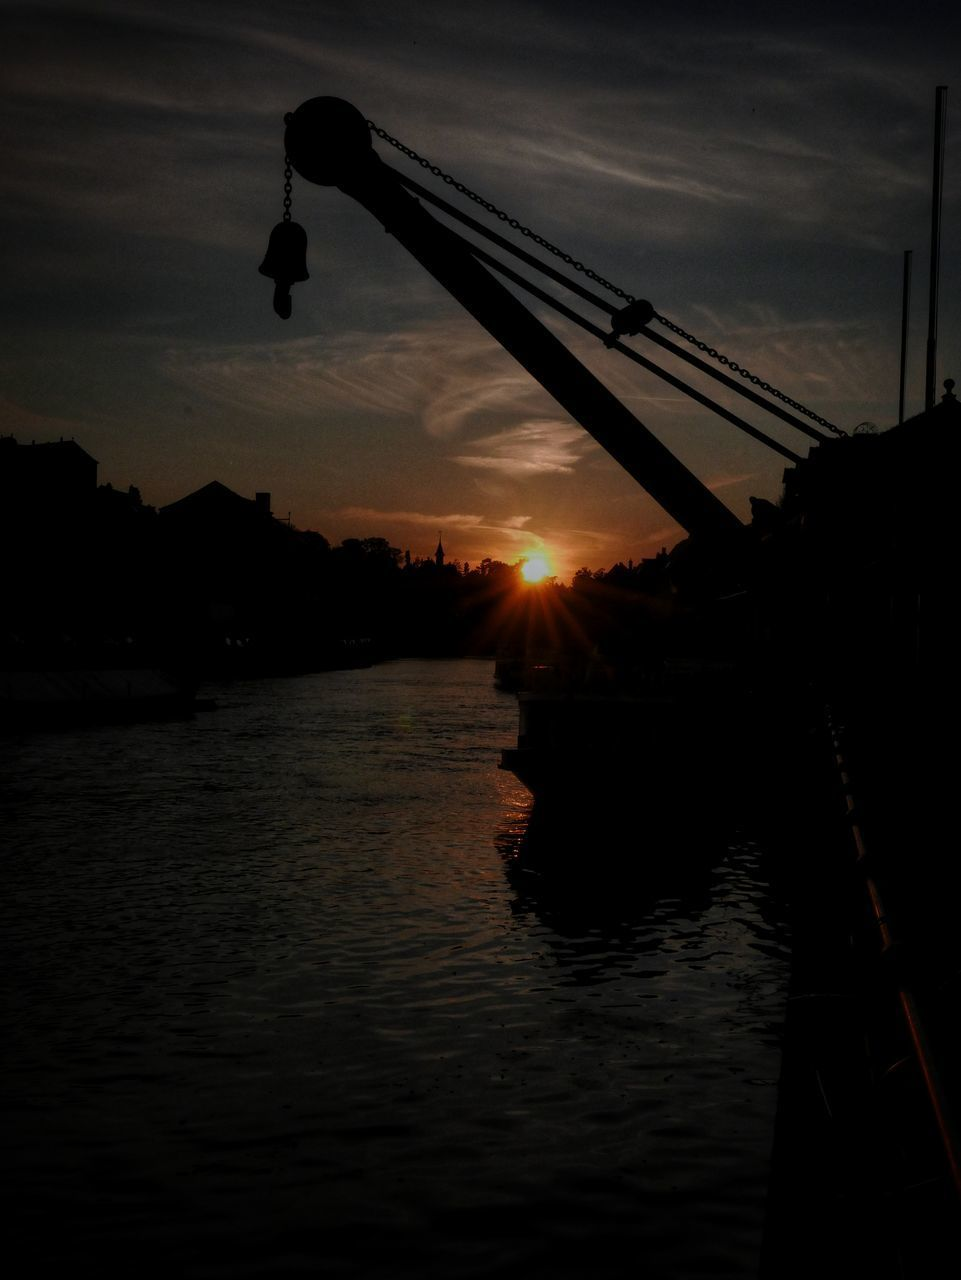 sunset, water, sky, silhouette, nature, sun, cloud - sky, transportation, nautical vessel, orange color, waterfront, river, scenics - nature, beauty in nature, reflection, outdoors, sunlight, no people, sailboat